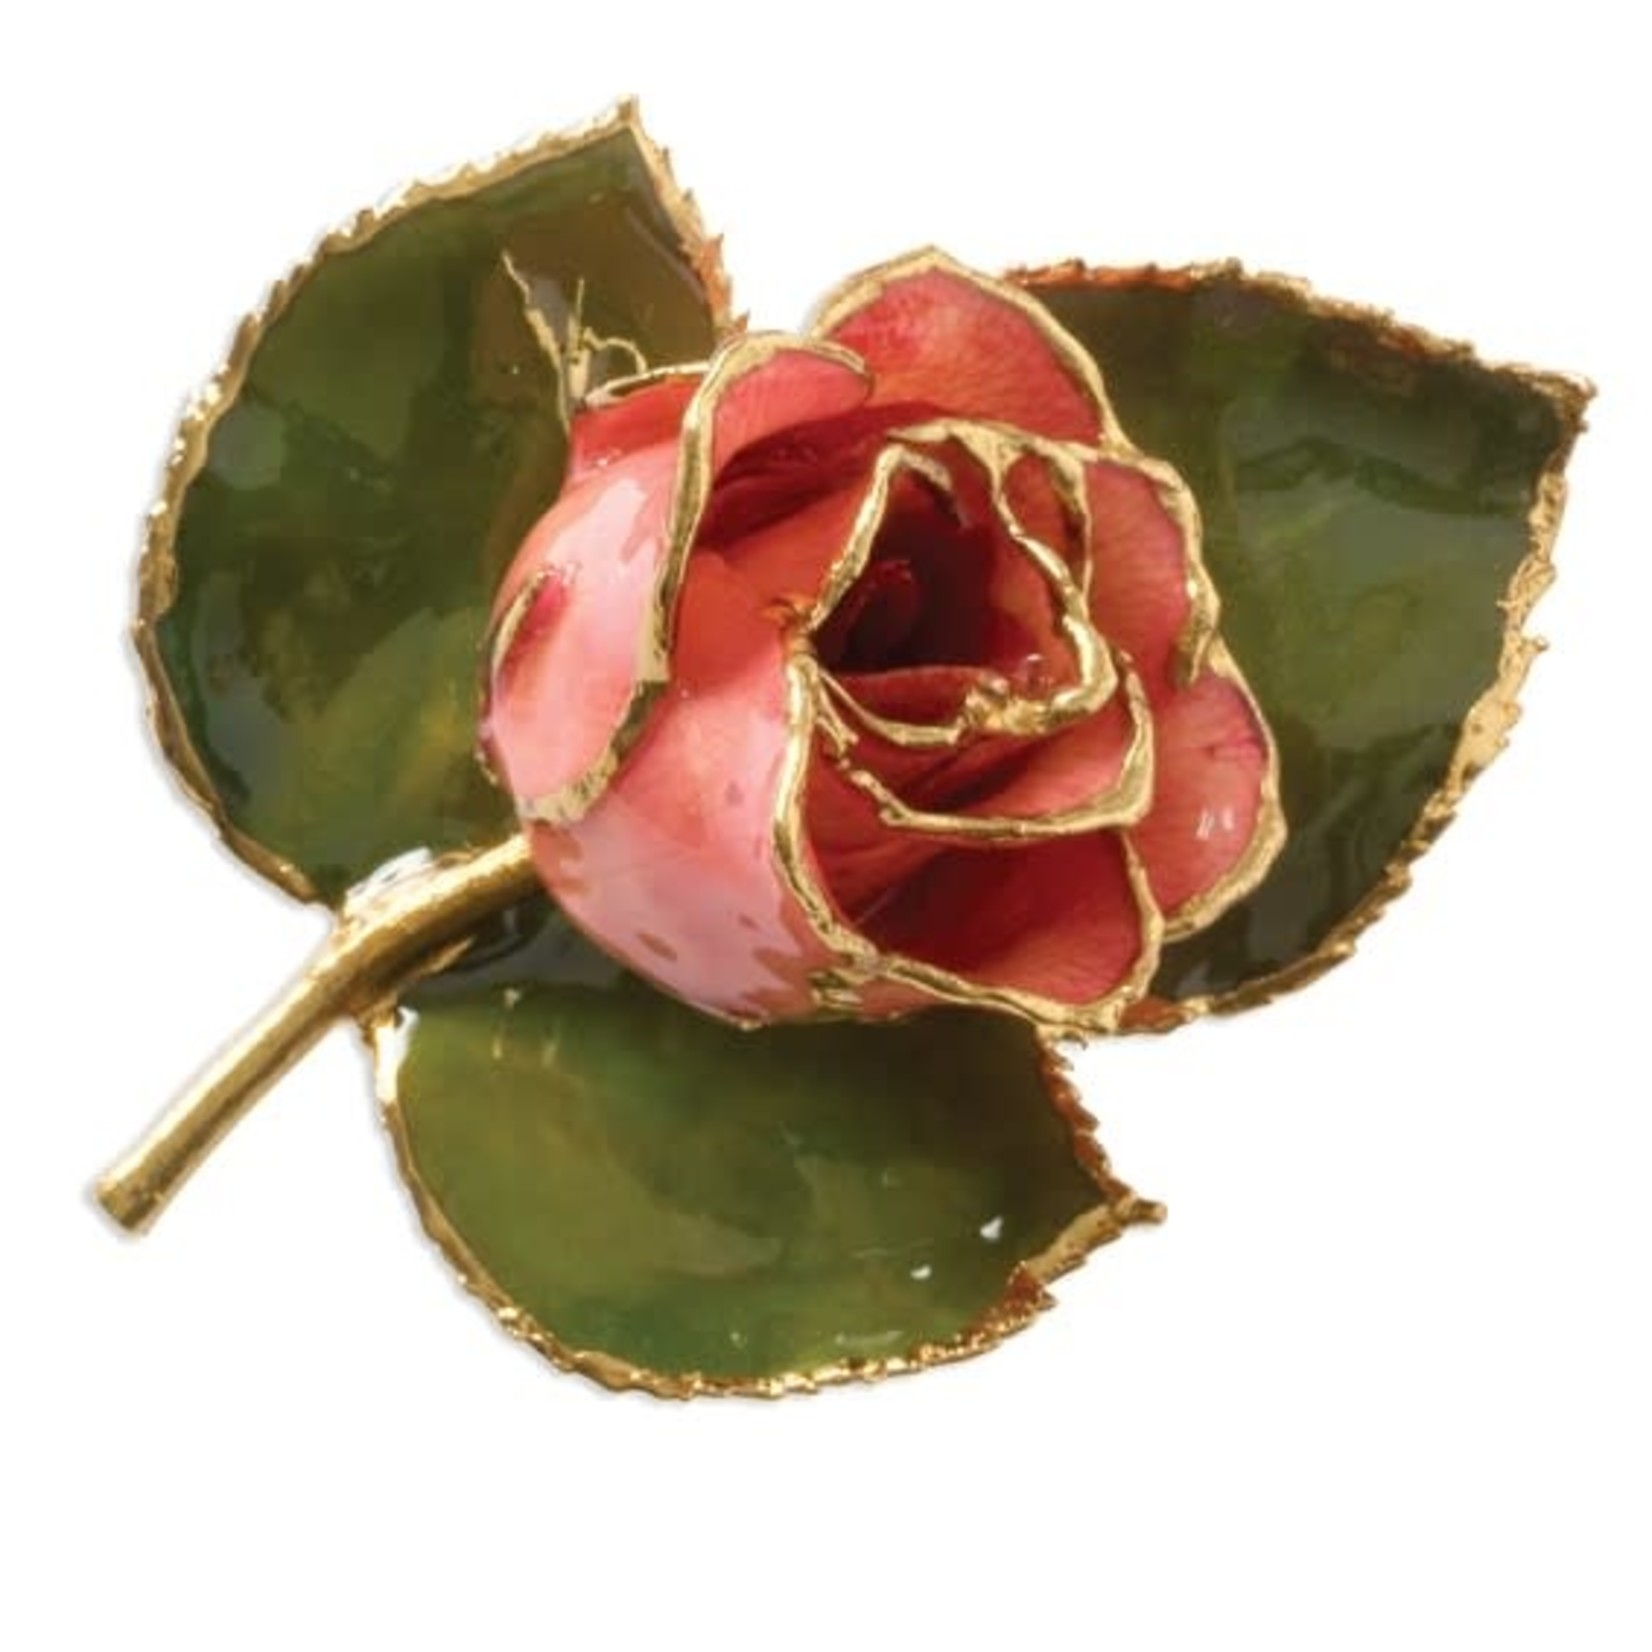 This Is Life Lacquer Dipped Pink Rose on Leaf Pin Brooch